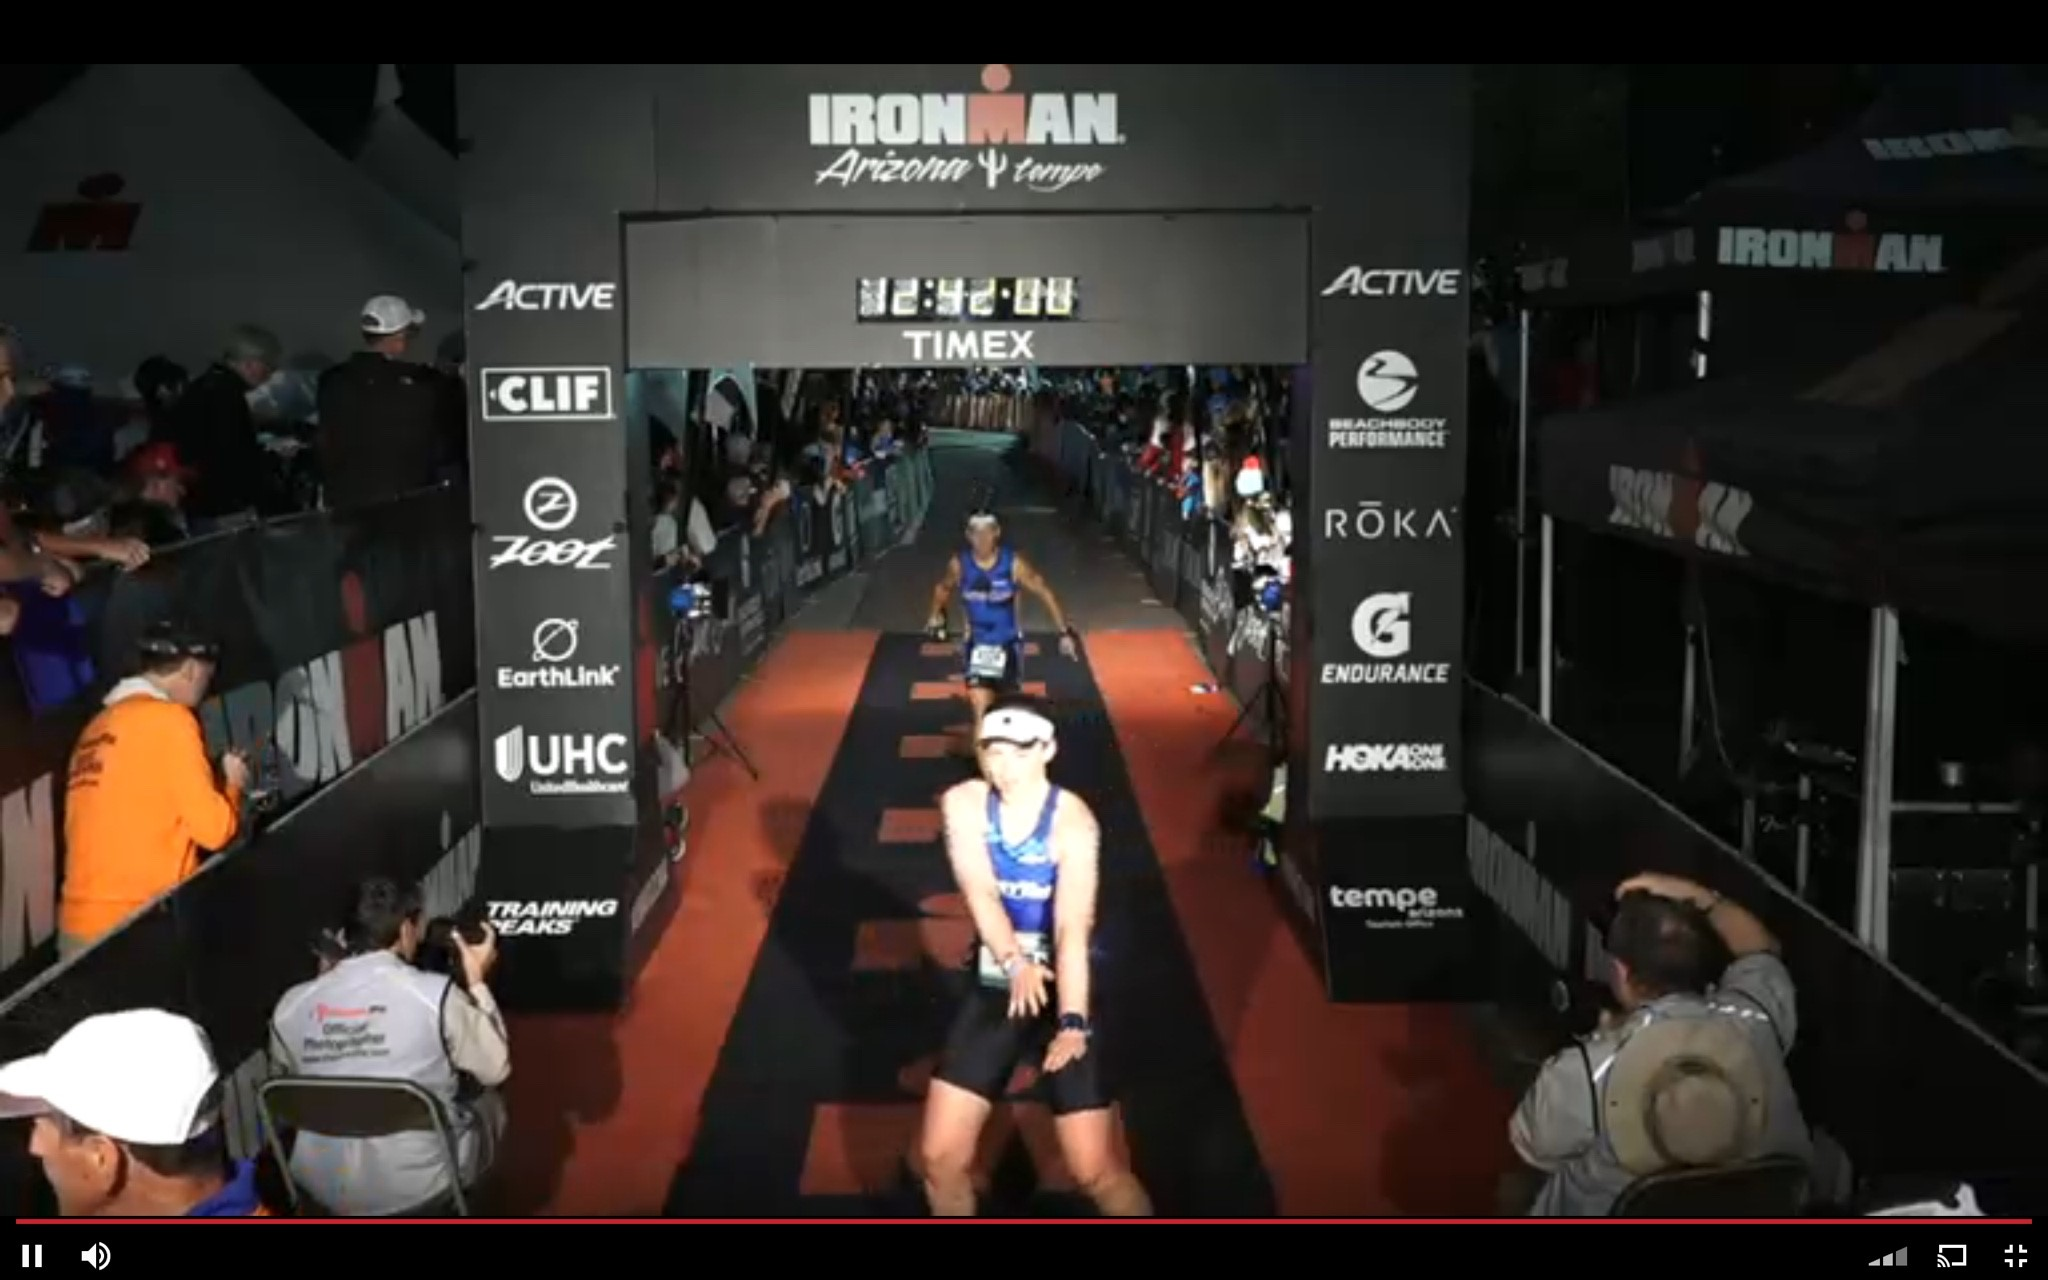 Me showing off my dance moves as I cross the finish line!  Not only did I complete the Ironman Arizona, I did it in a personal best sub 13 hours!